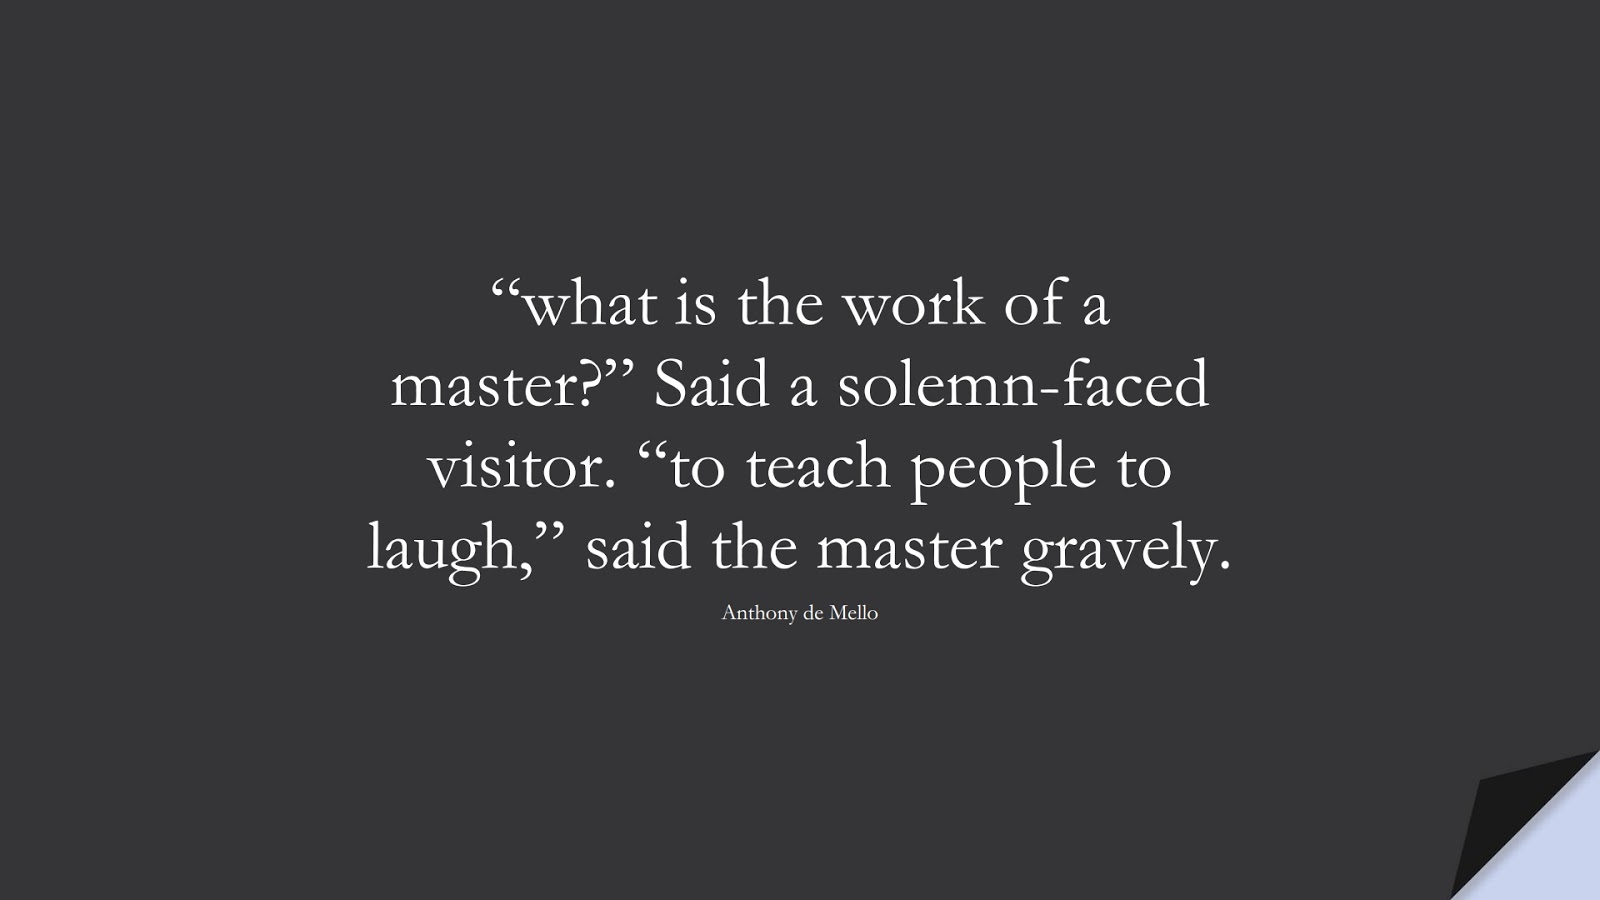 """""""what is the work of a master?"""" Said a solemn-faced visitor. """"to teach people to laugh,"""" said the master gravely. (Anthony de Mello);  #StoicQuotes"""